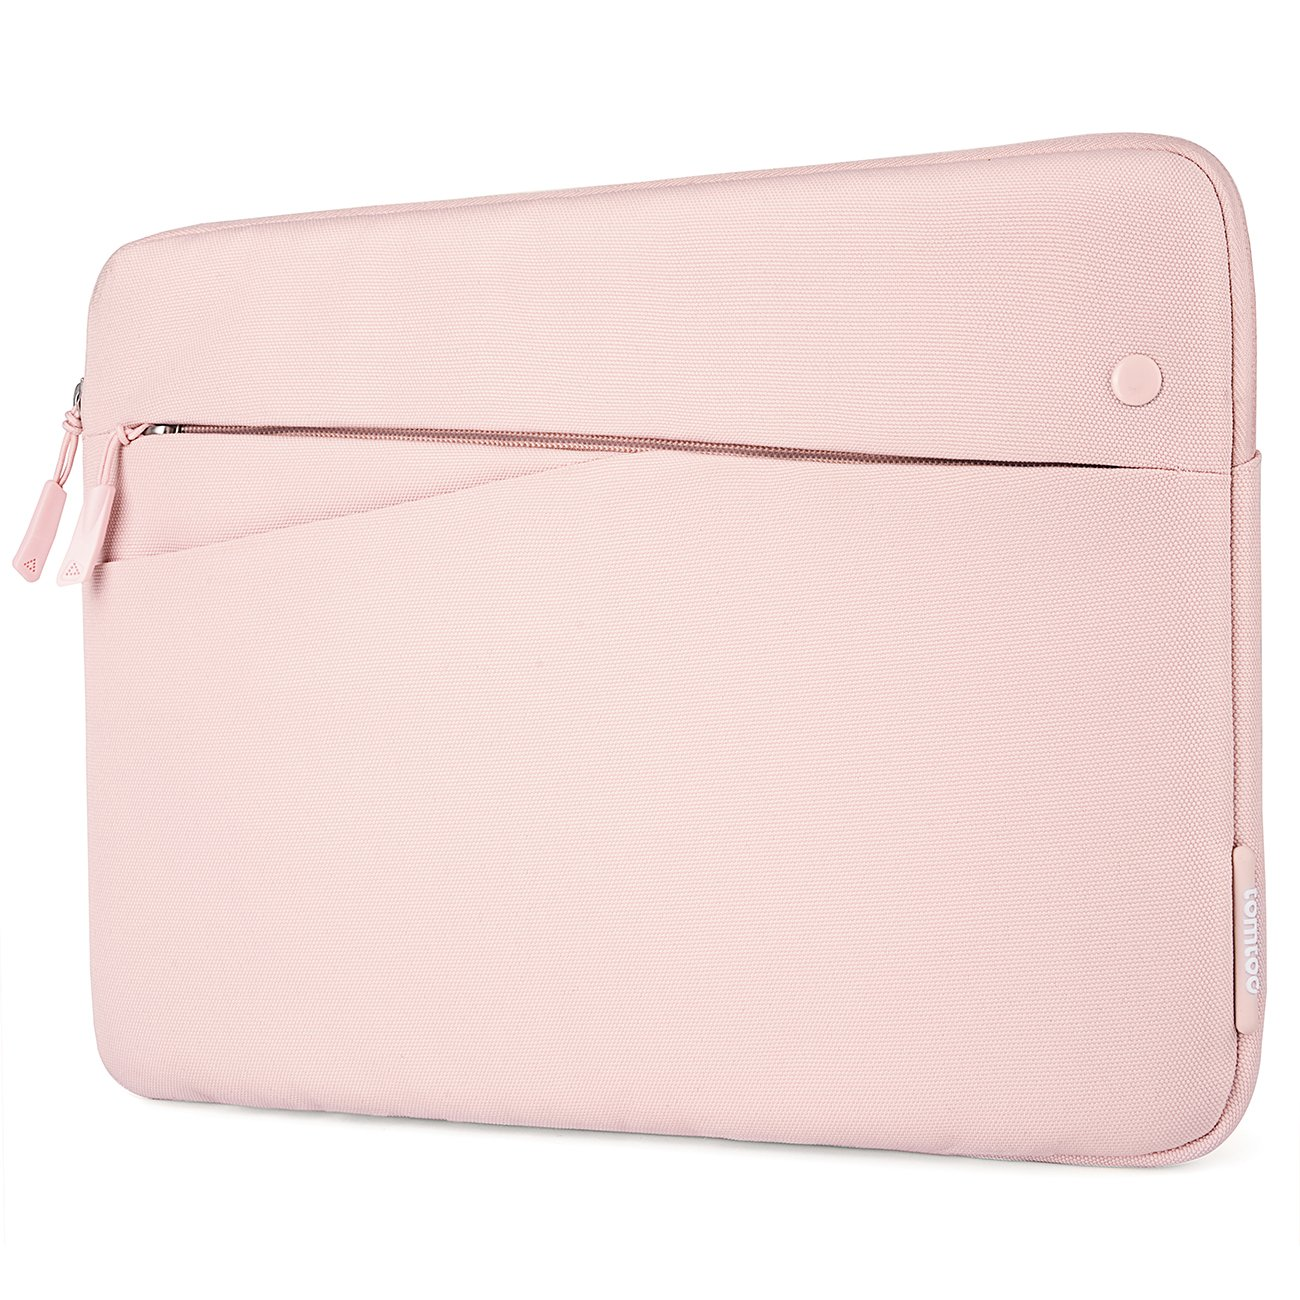 "Laptop Case: tomtoc Laptop Sleeve Bag Sleeve Case Fit 2018 New MacBook Air 13-inch with Retina Display A1932 | 13"" MacBook Pro with USB-C A1989 A1706 A1708 